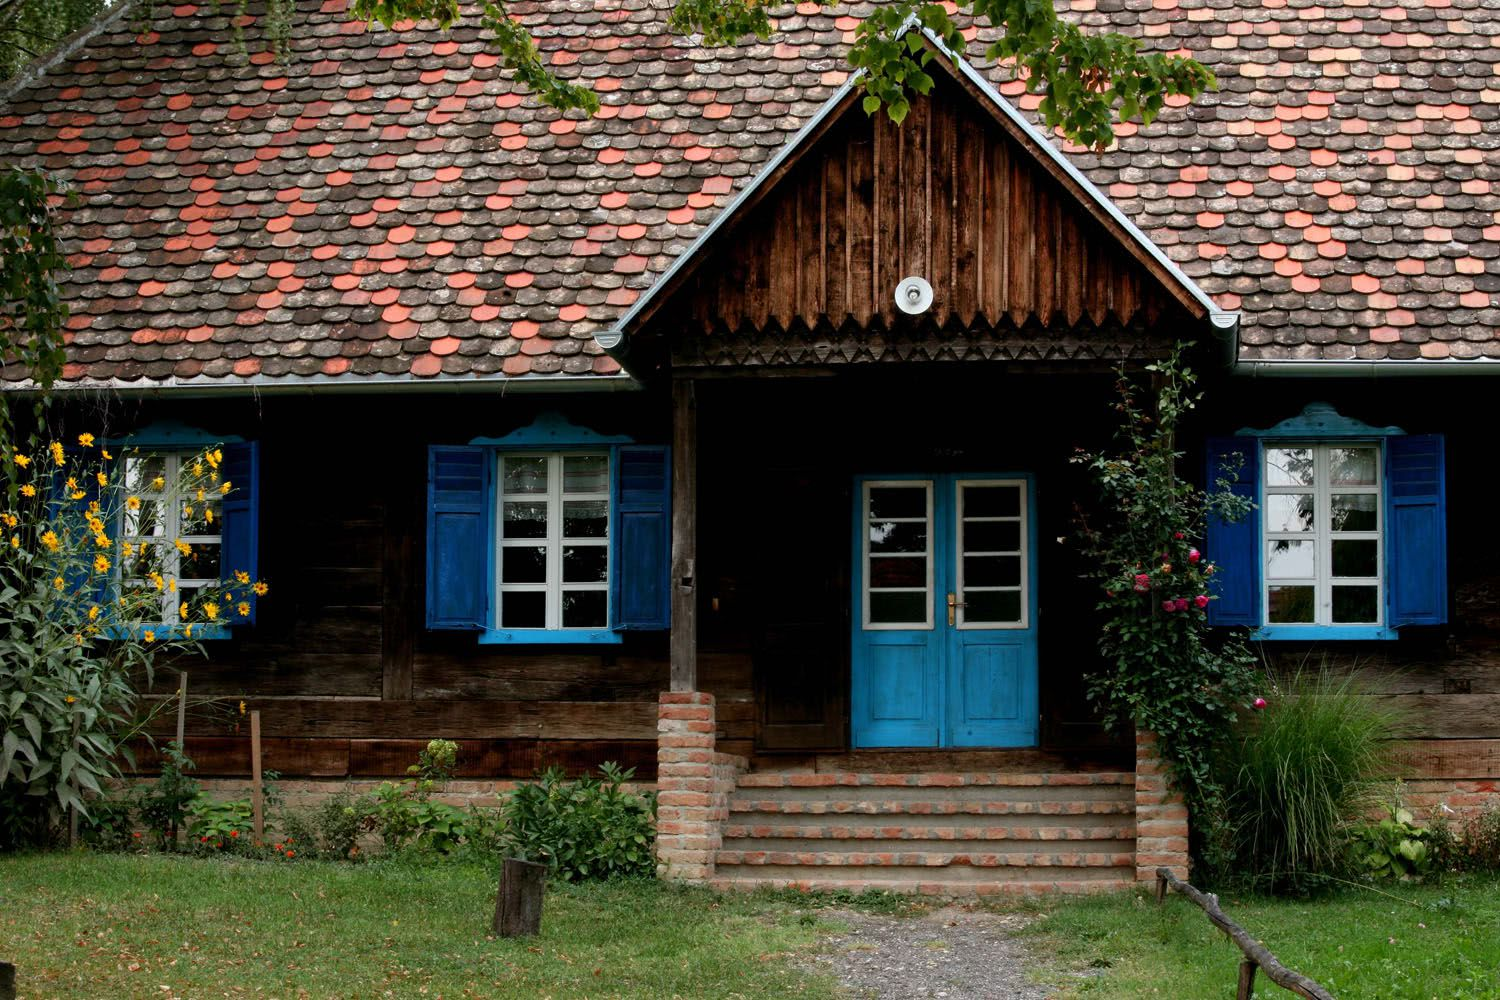 Hiking Croatia Village in Zagreb Surroundings